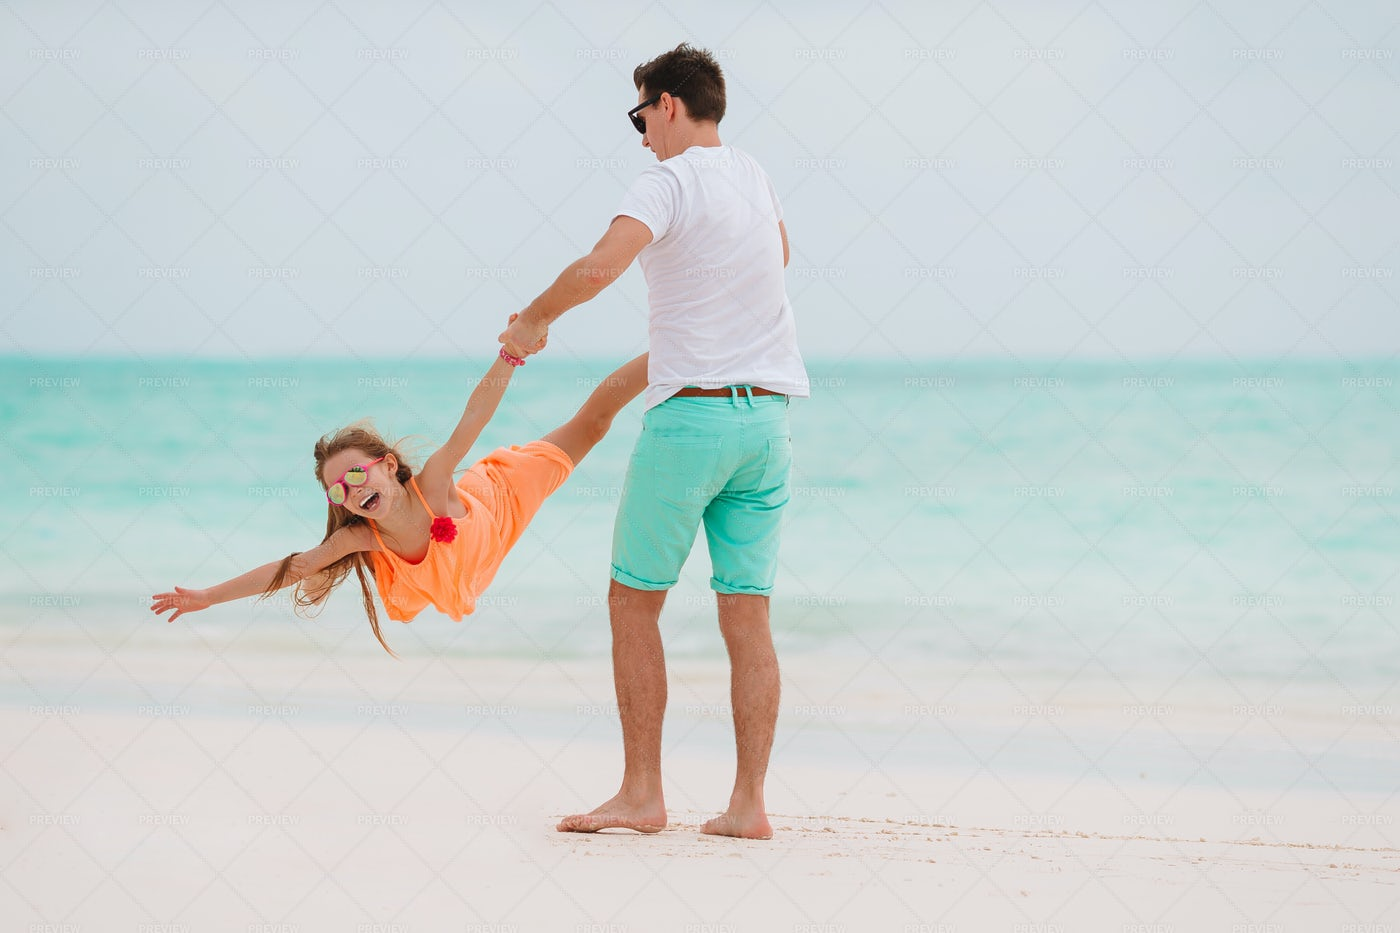 Happy Moment Of Father And Daughter: Stock Photos